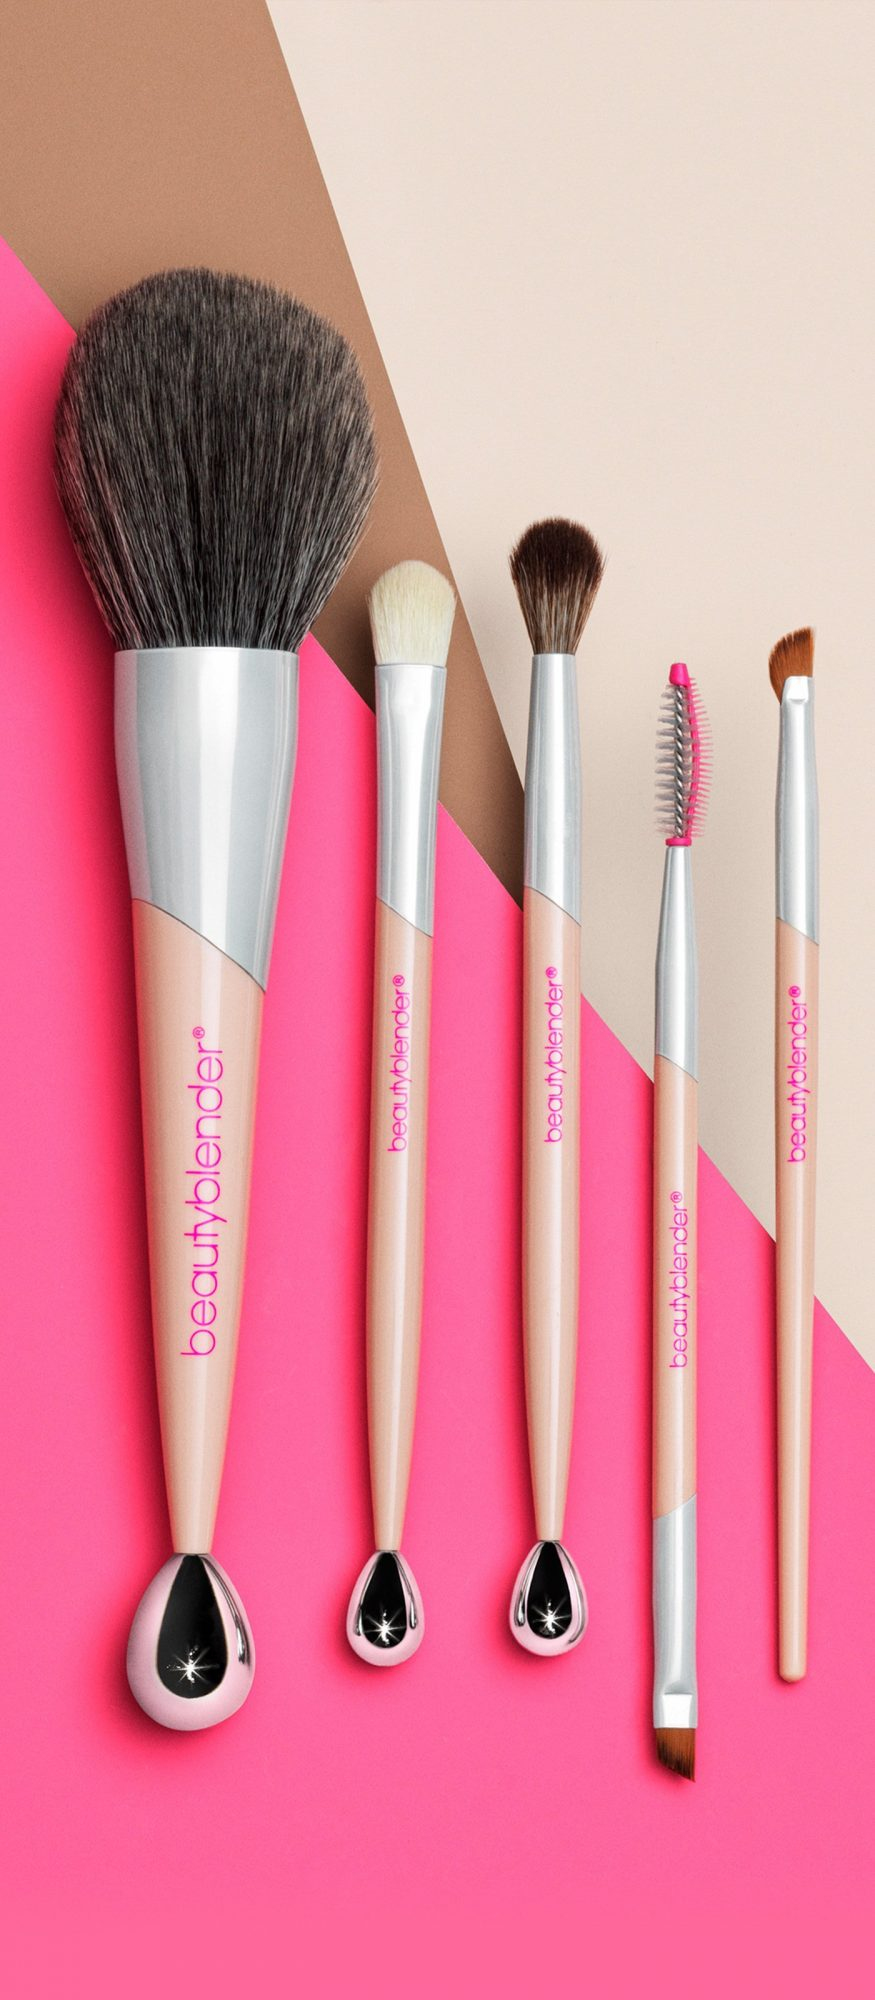 The innovative rollerball tip on these tools helps smooth skin before you apply makeup.                             Buy It! Beautyblender The Entourage 5-Piece Brush Set, $133; beautyblender.com